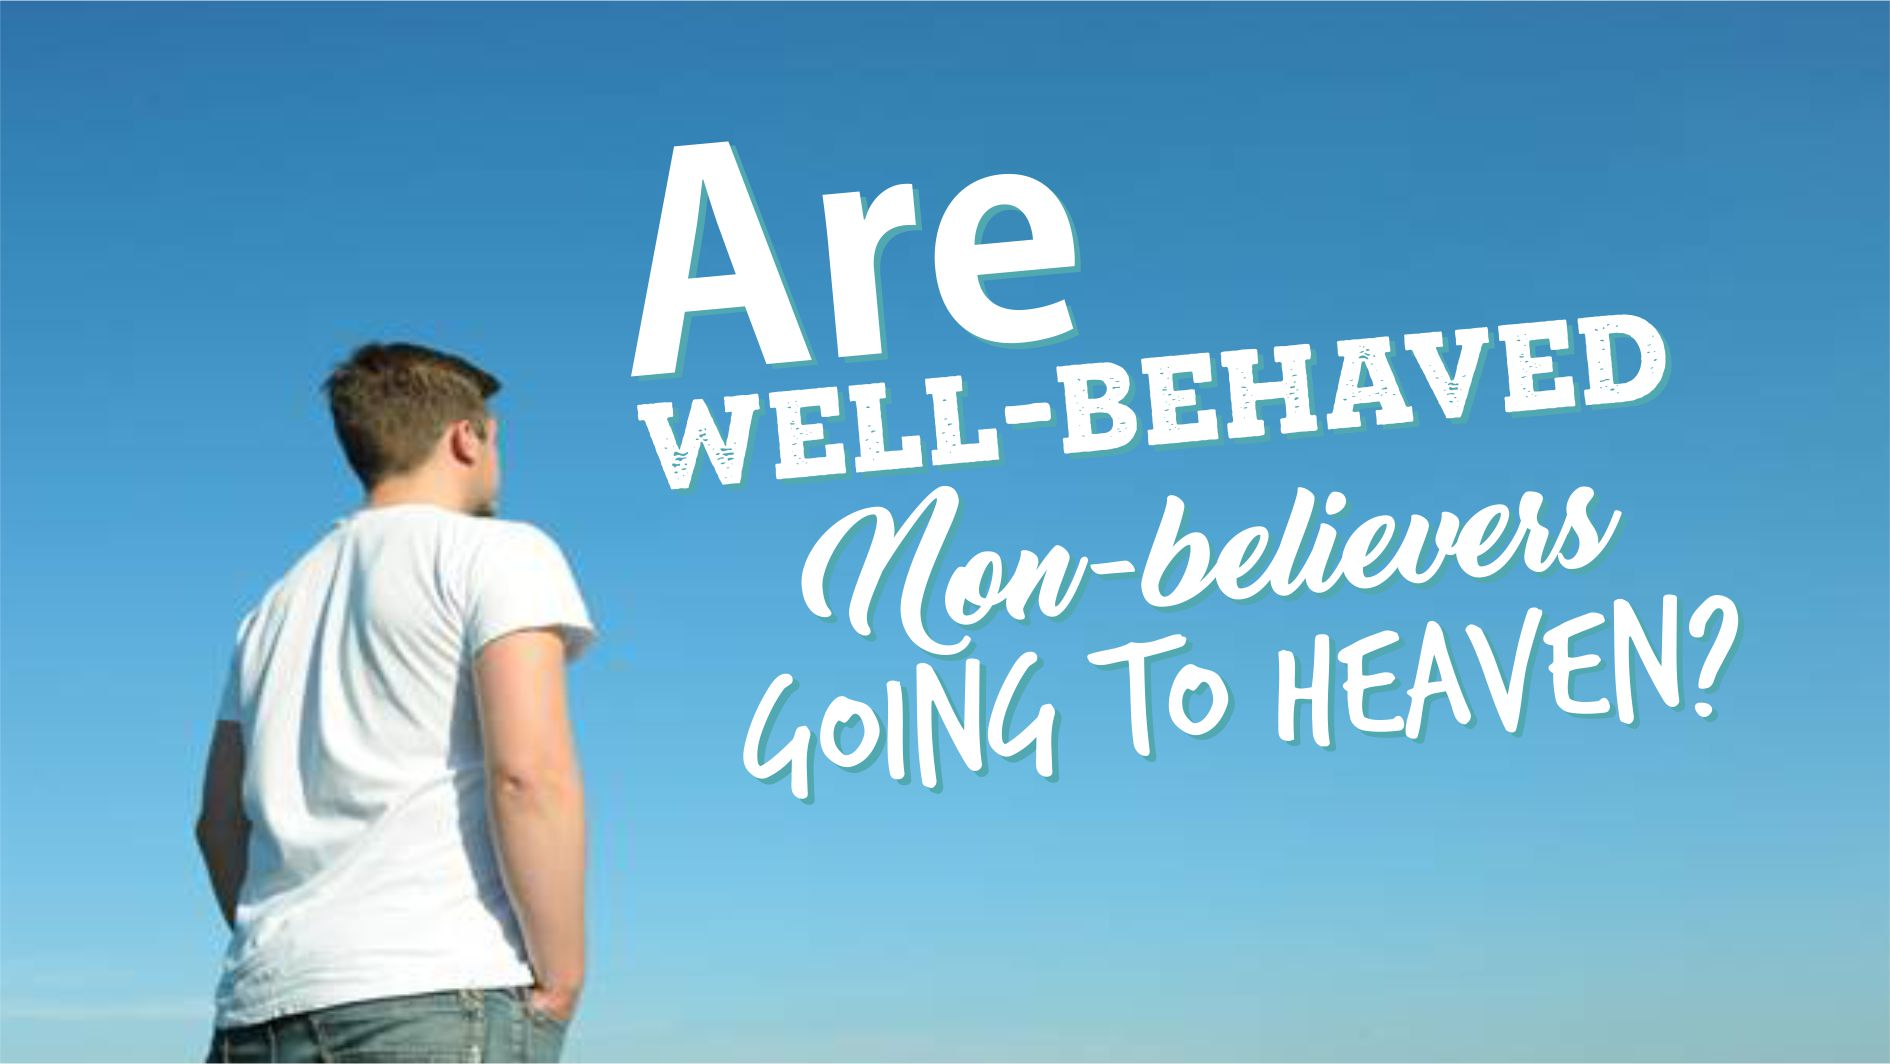 ARE WELL-BEHAVED NON-BELIEVERS GOING TO HEAVEN?